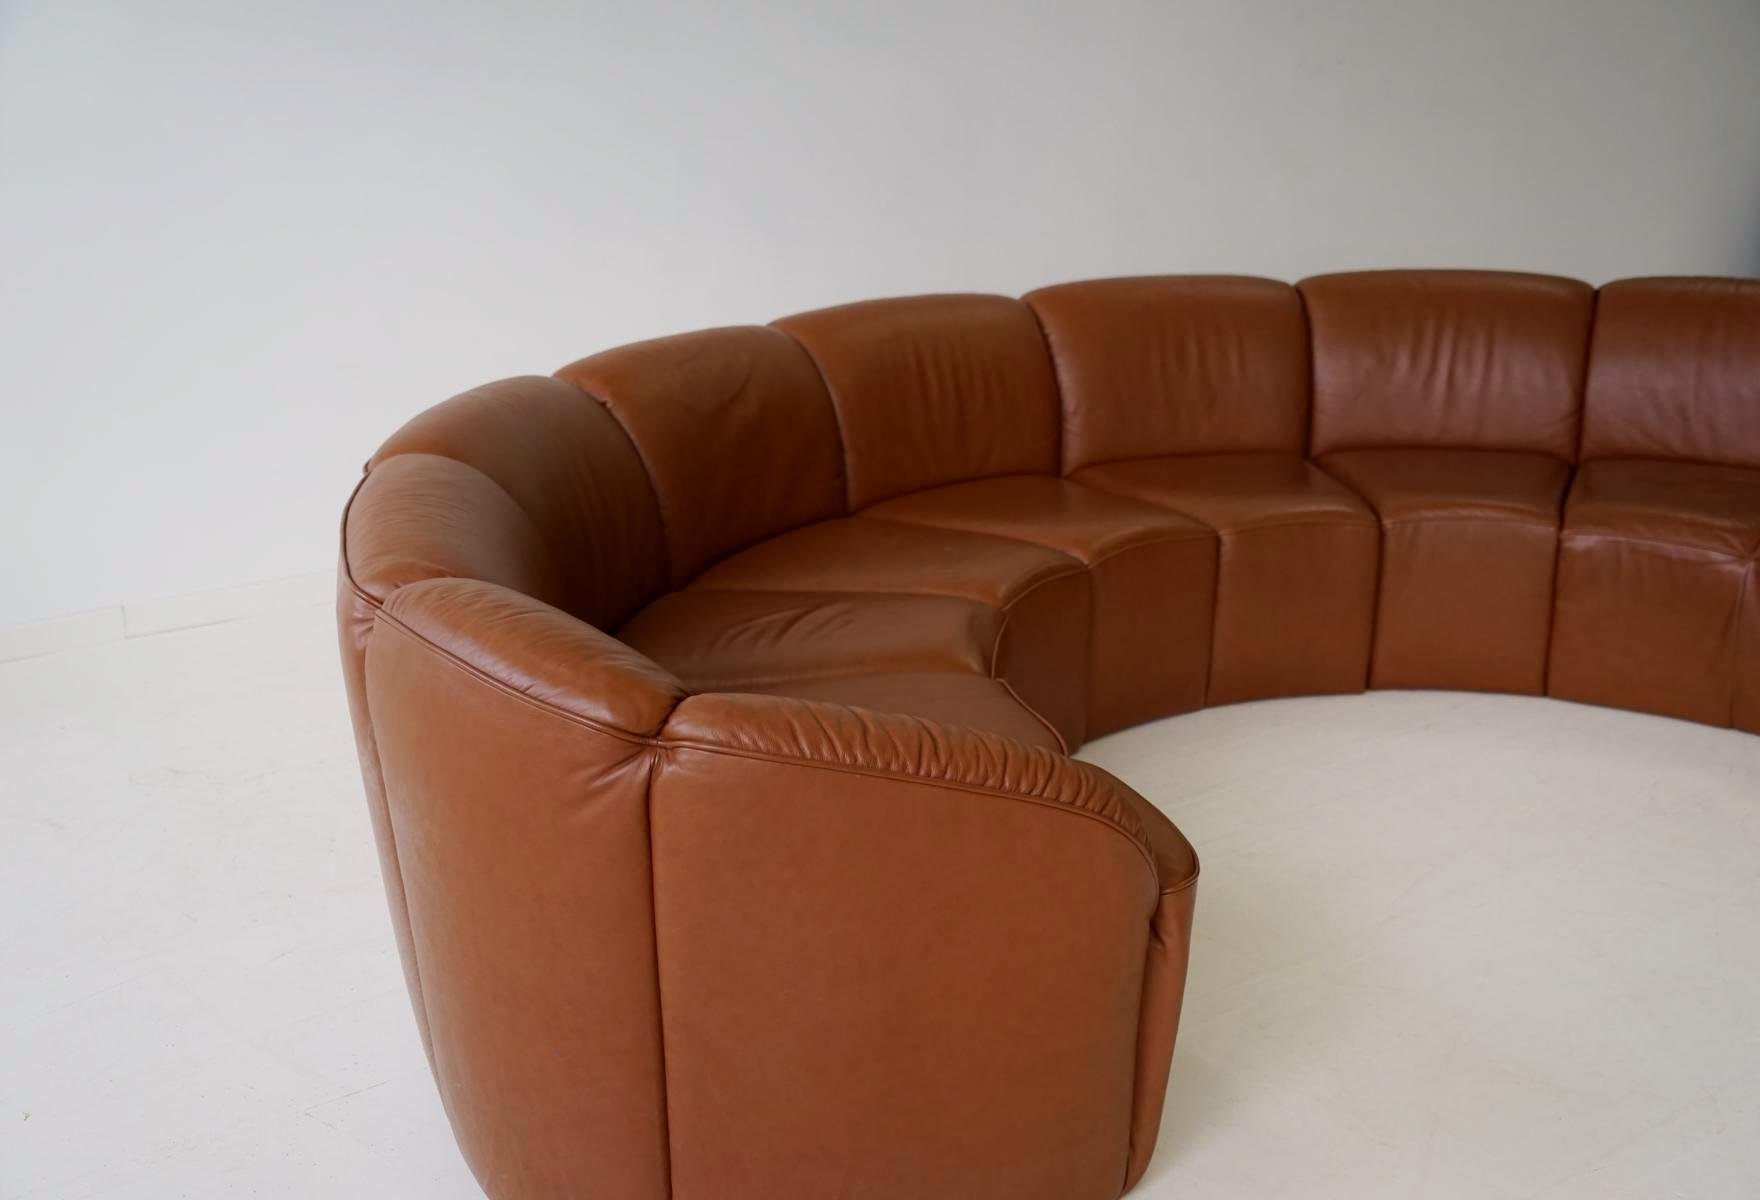 Vintage Curved Leather Sofa By Walter Knoll 1960s For